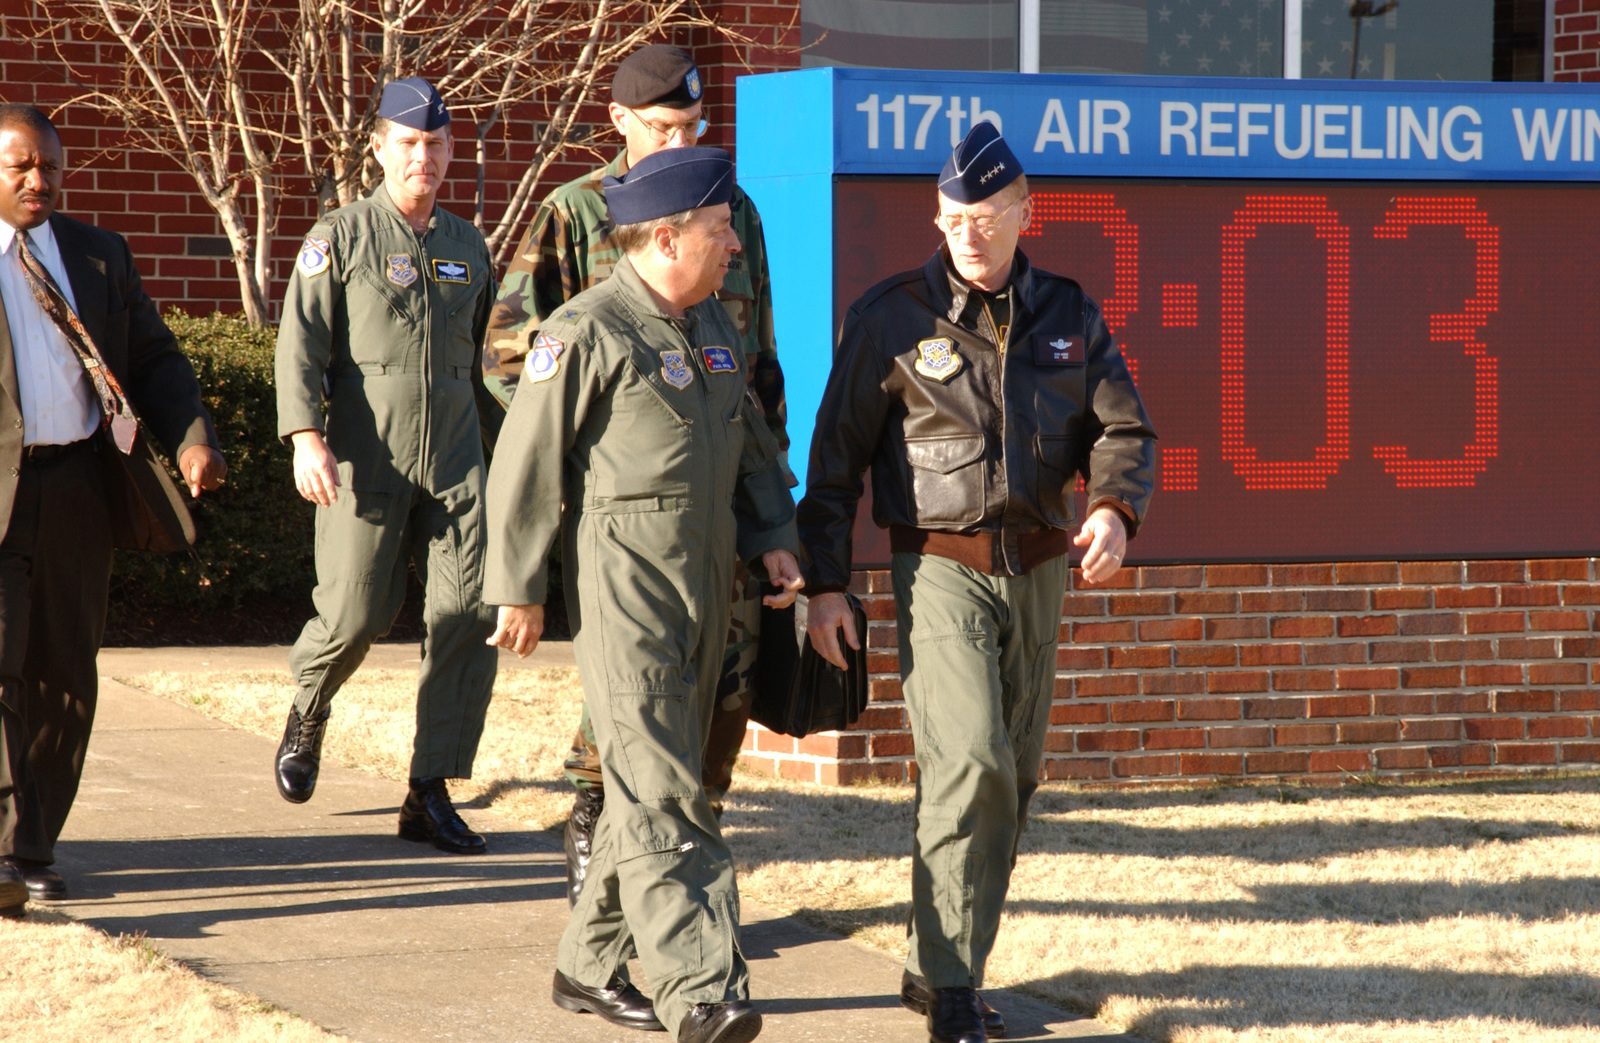 US Air Force (USAF) General (GEN) John W. Handy, Commander, Air Mobility Command (AMC) and US Transportation Command (USTRANSCOM), completes his visit to the 117th Air Refueling Wing (ARW), Alabama Air National Guard (ANG), Birmingham, Alabama (AL), an AMC gained unit. GEN Handy is escorted back to his aircraft by Colonel (COL) Paul D. Brown, Jr. (left), Commander, 117th ARW